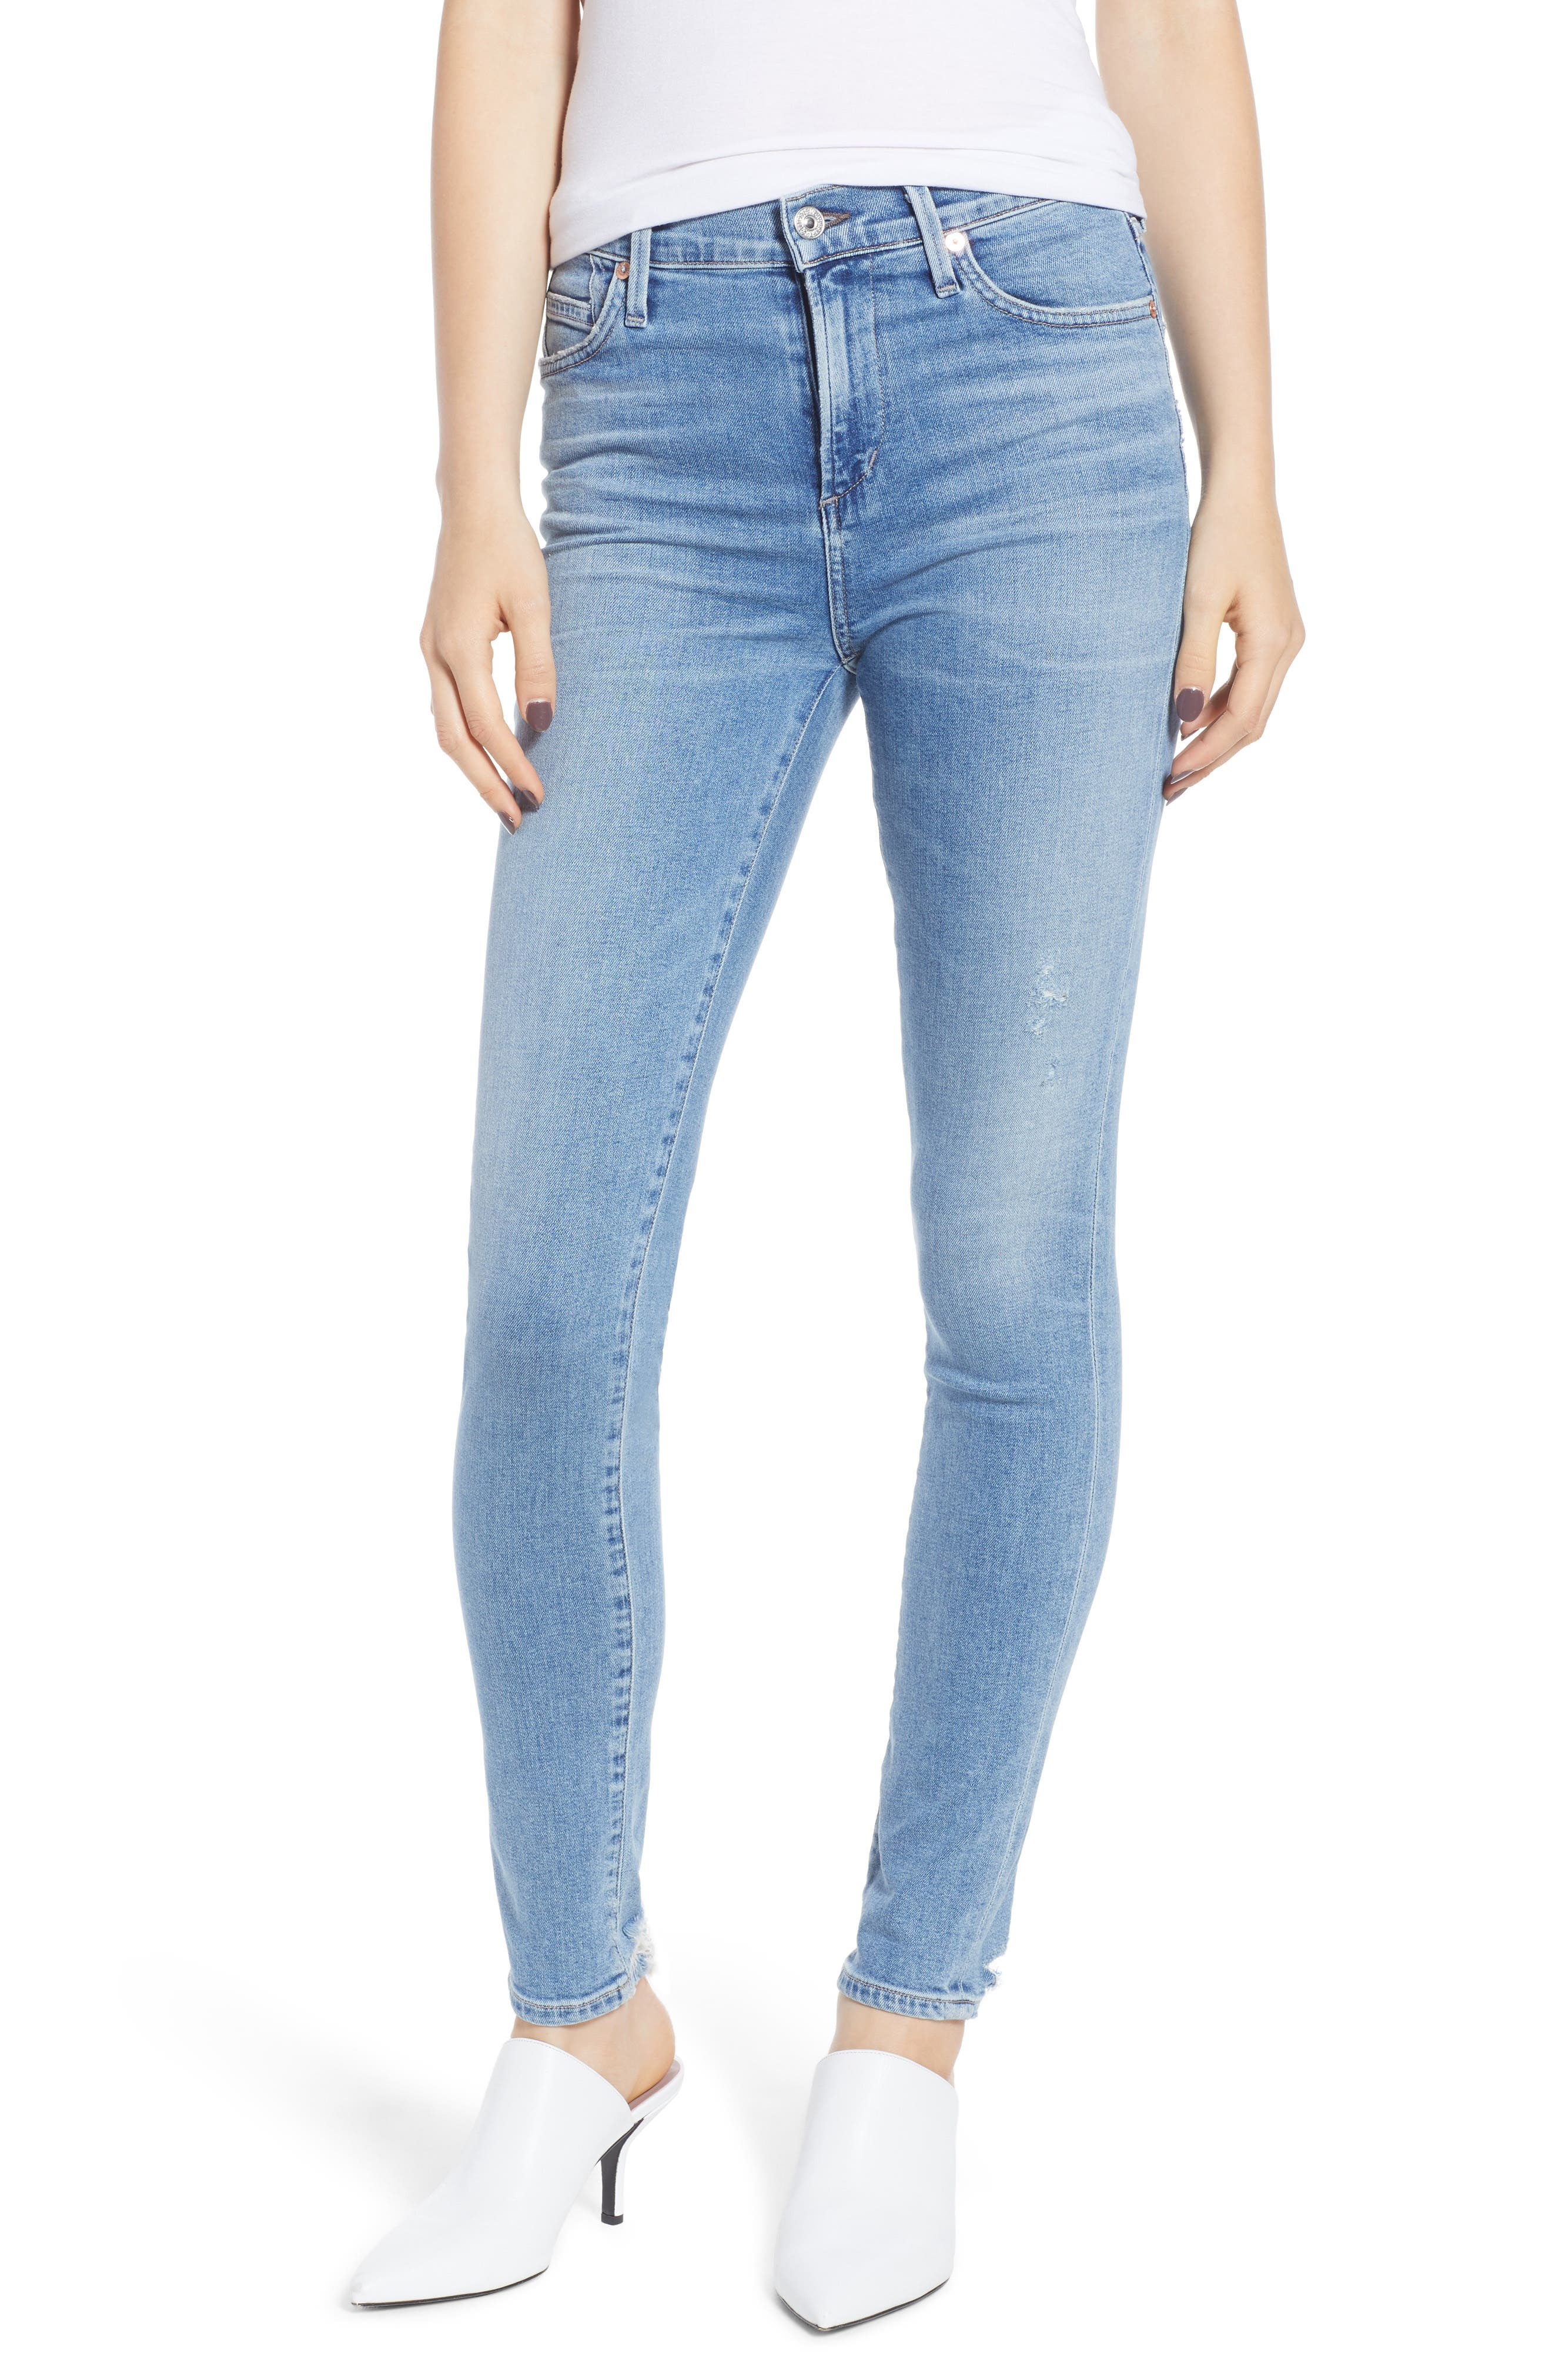 CITIZENS OF HUMANITY Rocket High Waist Skinny Jeans, Main, color, SMALL TALK